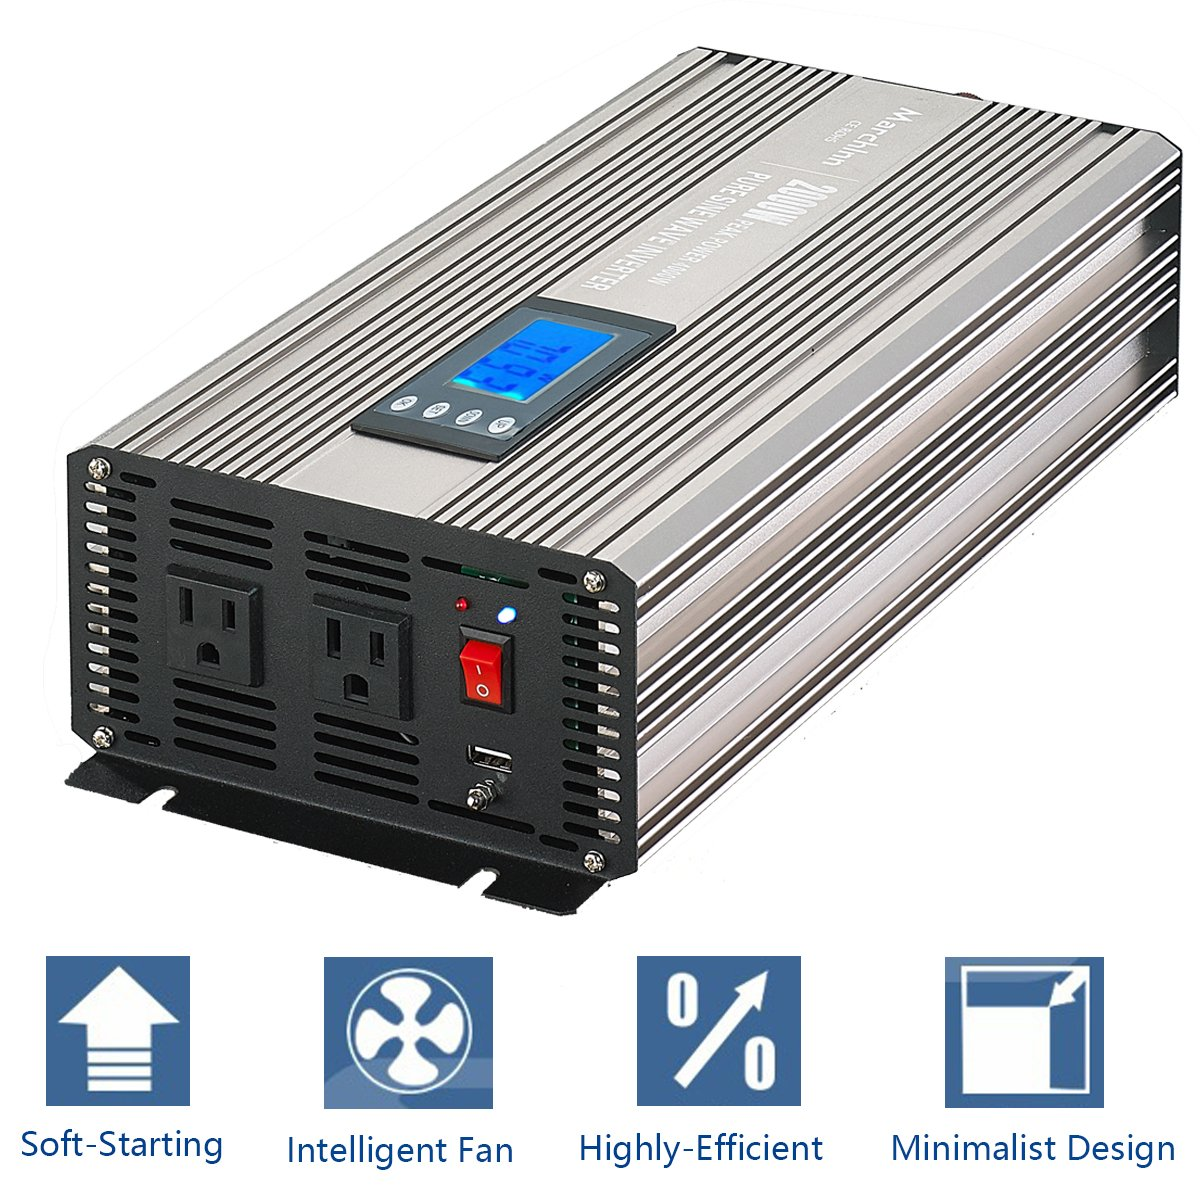 MarchInn 2000W (4000W Surge) Pure Sine Wave Solar Power Inverter Off Grid 12V DC to 120V AC Power Converter Solar Panel, RV for Home Car Use 12 V Generator with Smart-D Digital Display